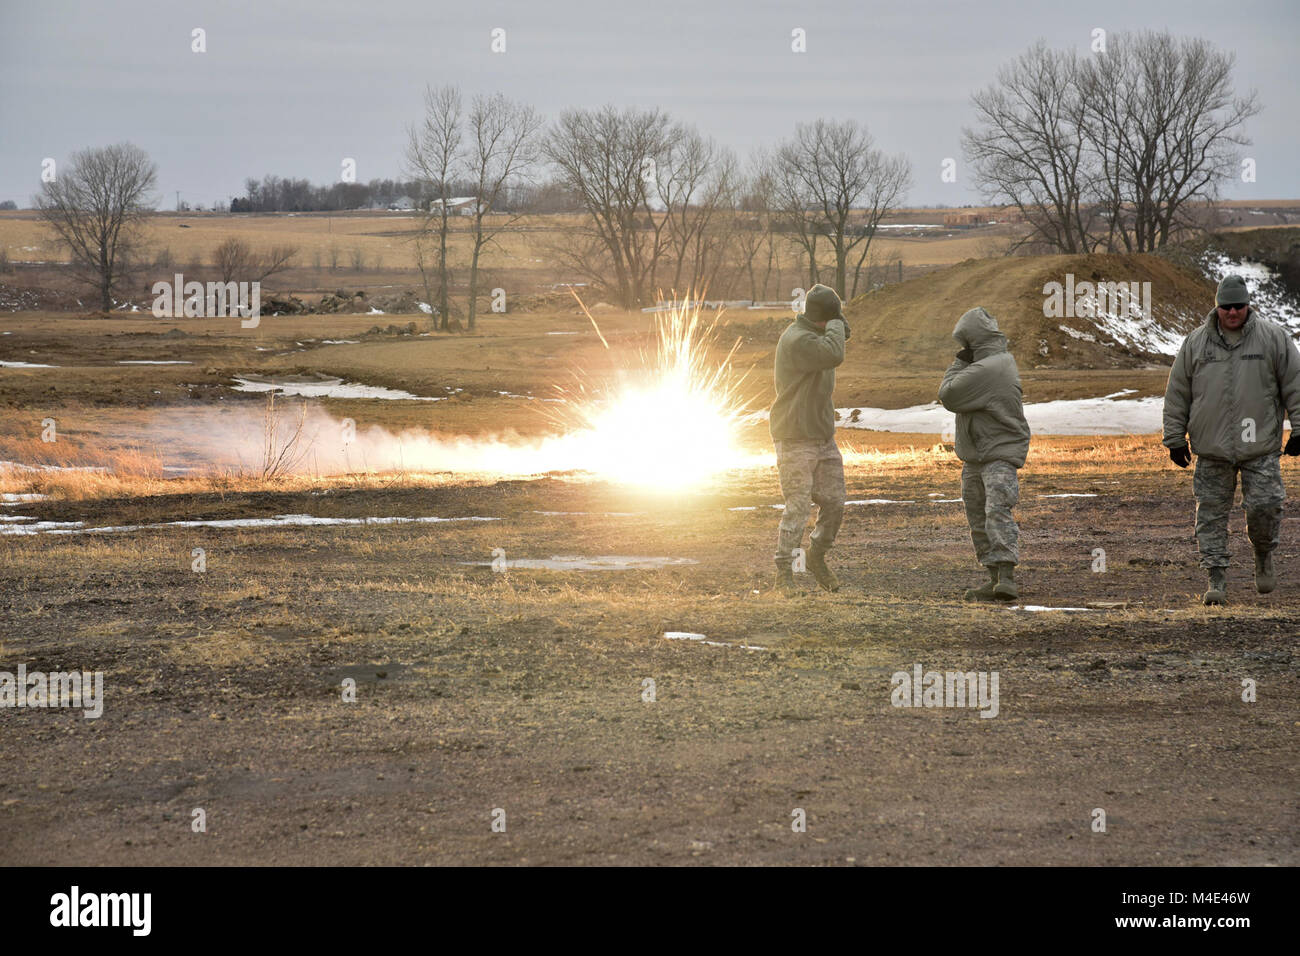 114th Security Forces Squadron members deploy ground burst simulators during training at a range near Joe Foss Field, - Stock Image